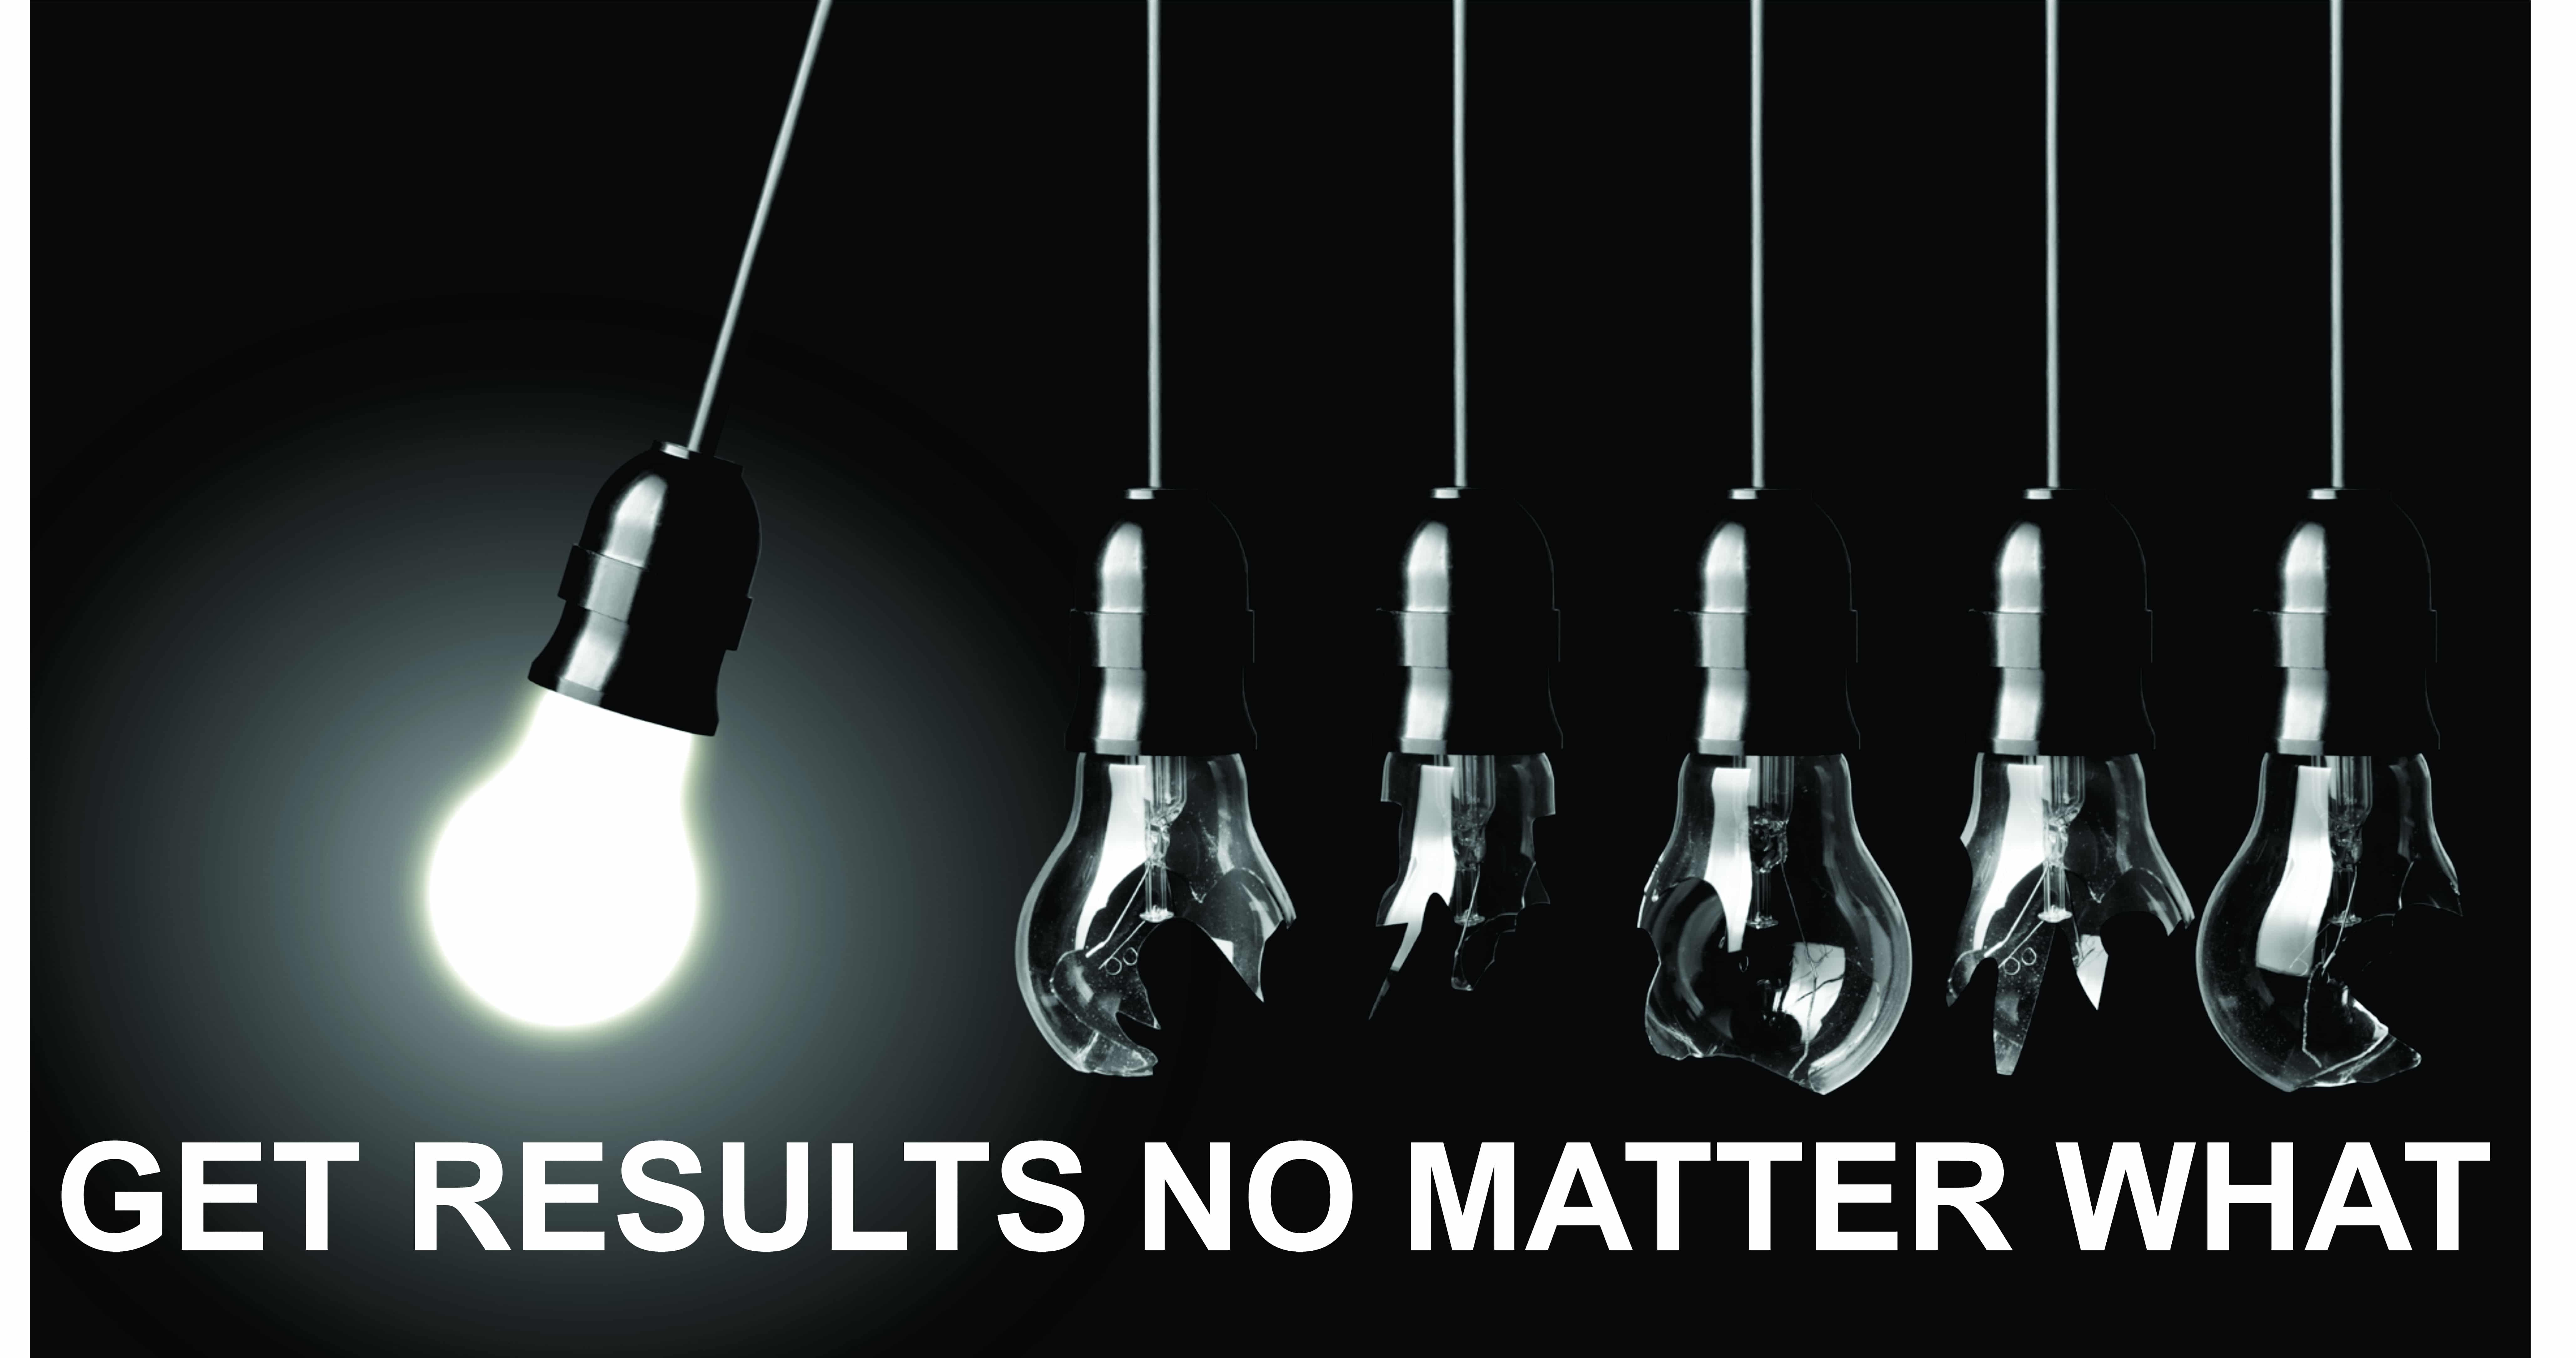 GET-RESULTS-NO-MATTER-WHAT-3001